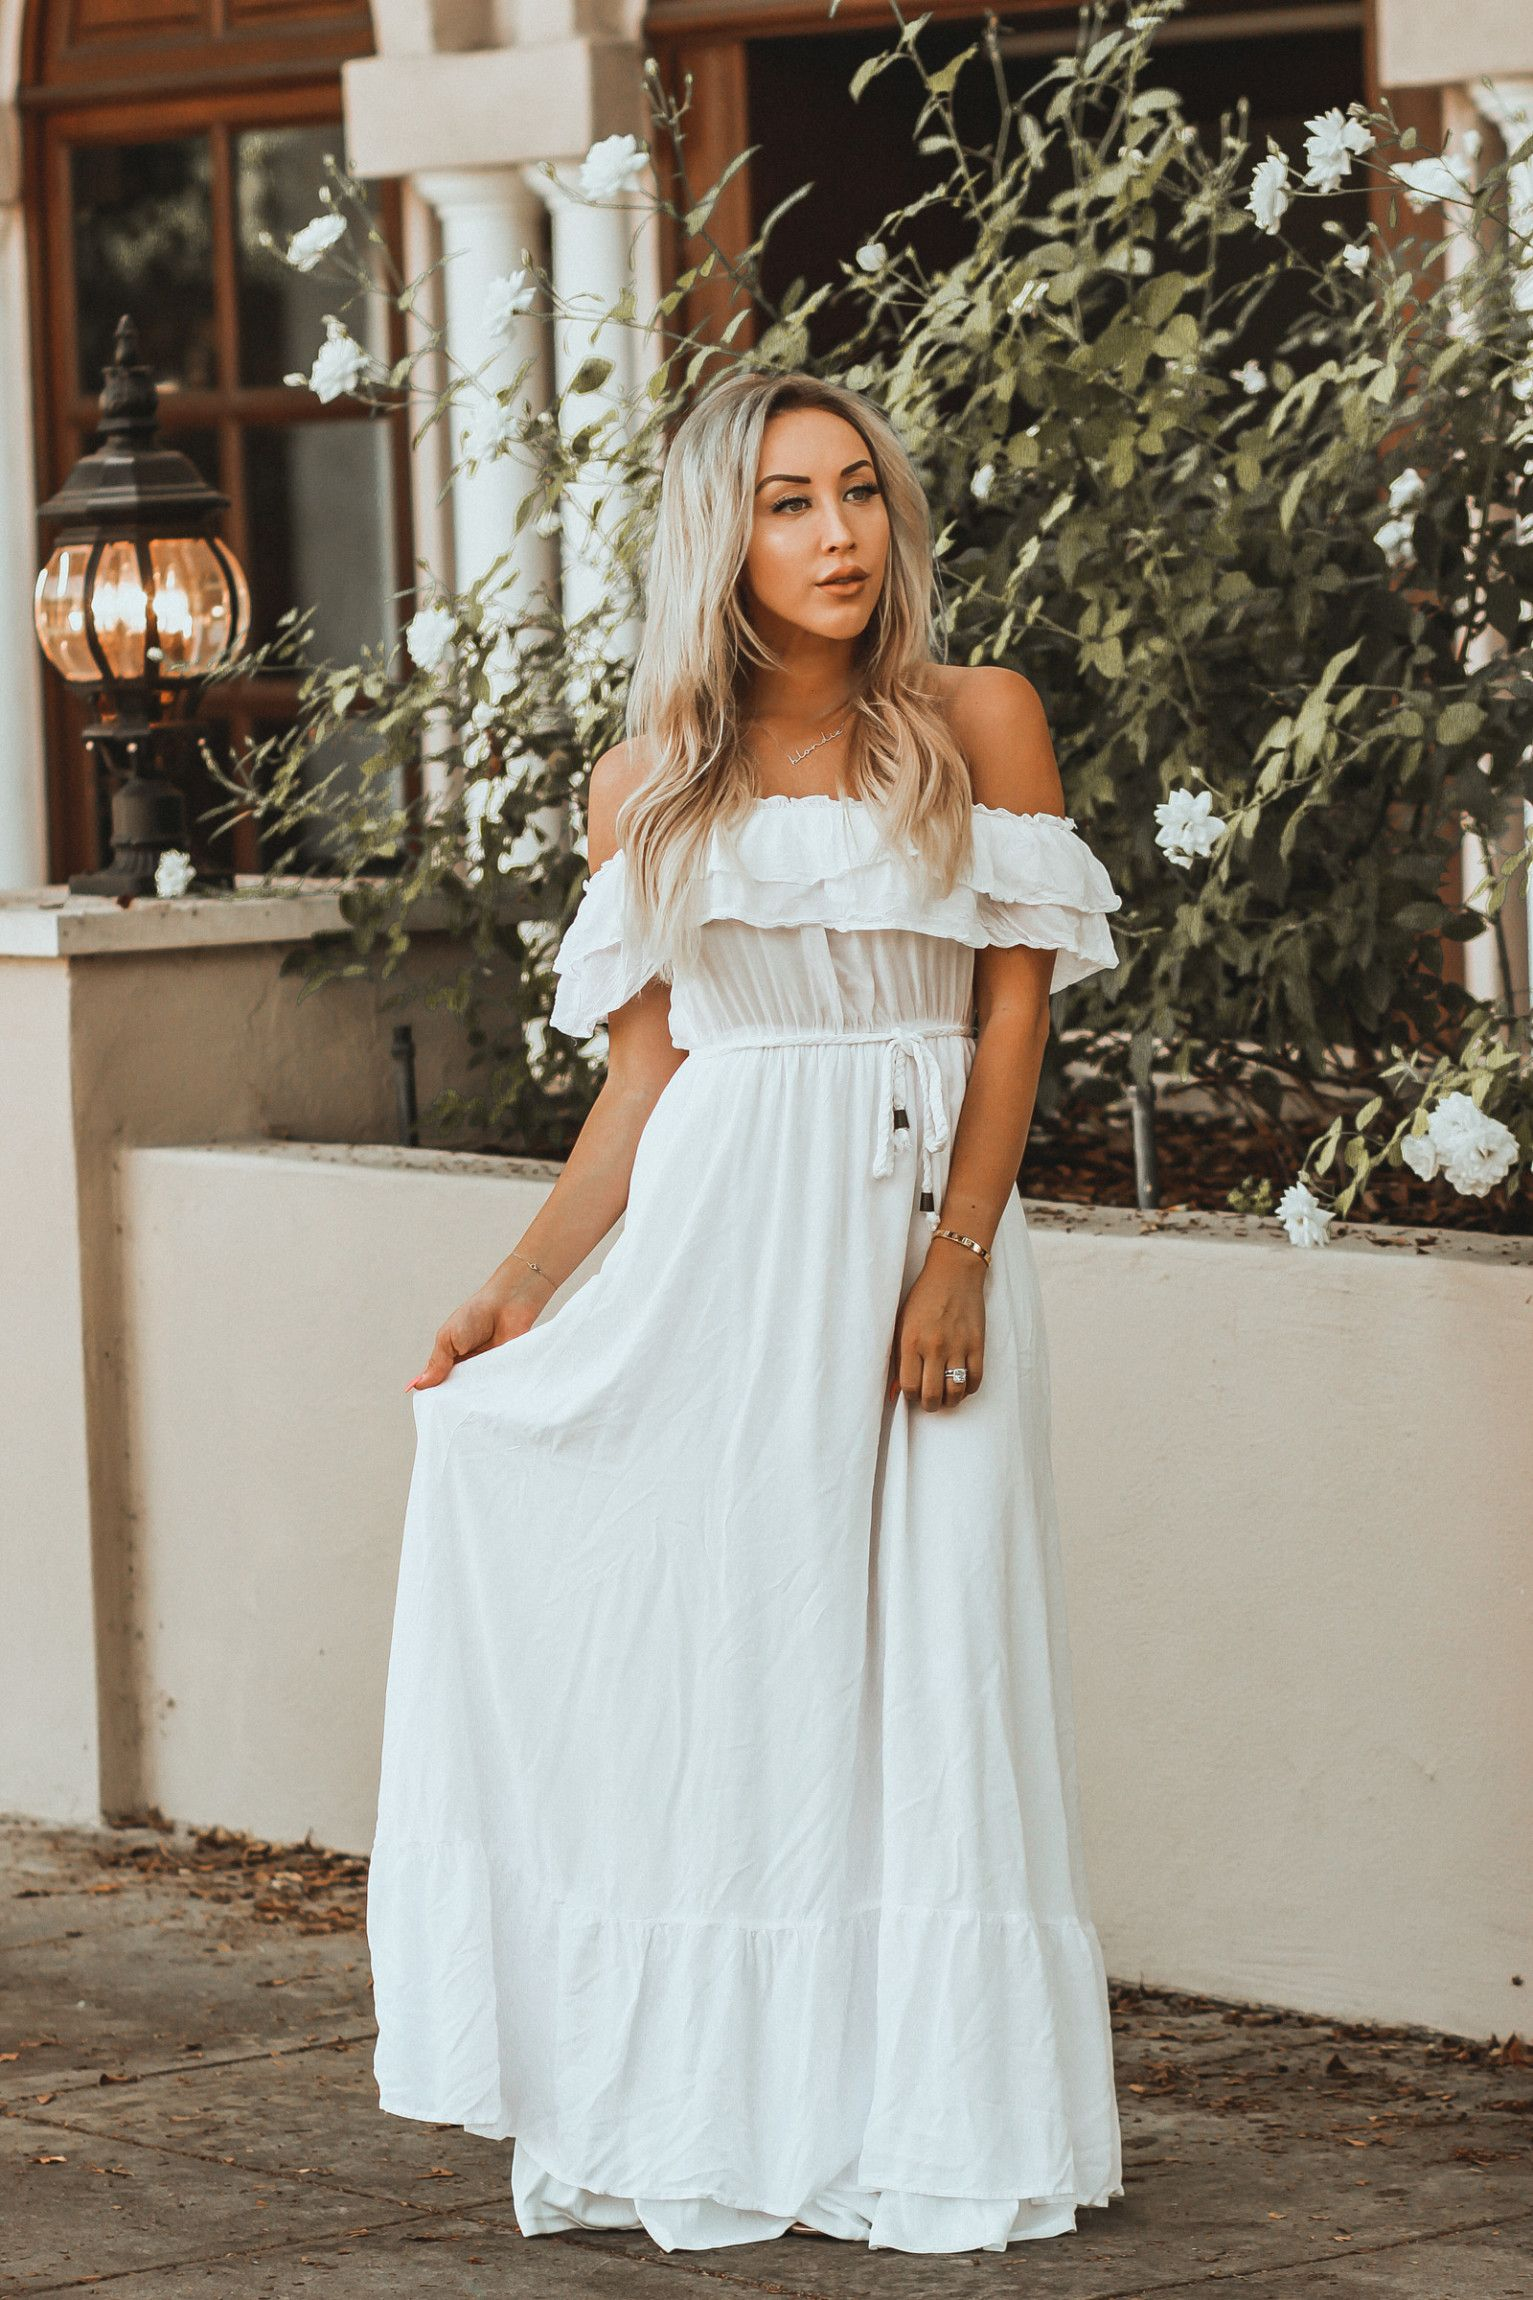 Bride To Be Vibes All Over Again Blondie In The City Bridal Shower Dress White Bohemian Dress Shower Dress For Bride [ 2300 x 1533 Pixel ]